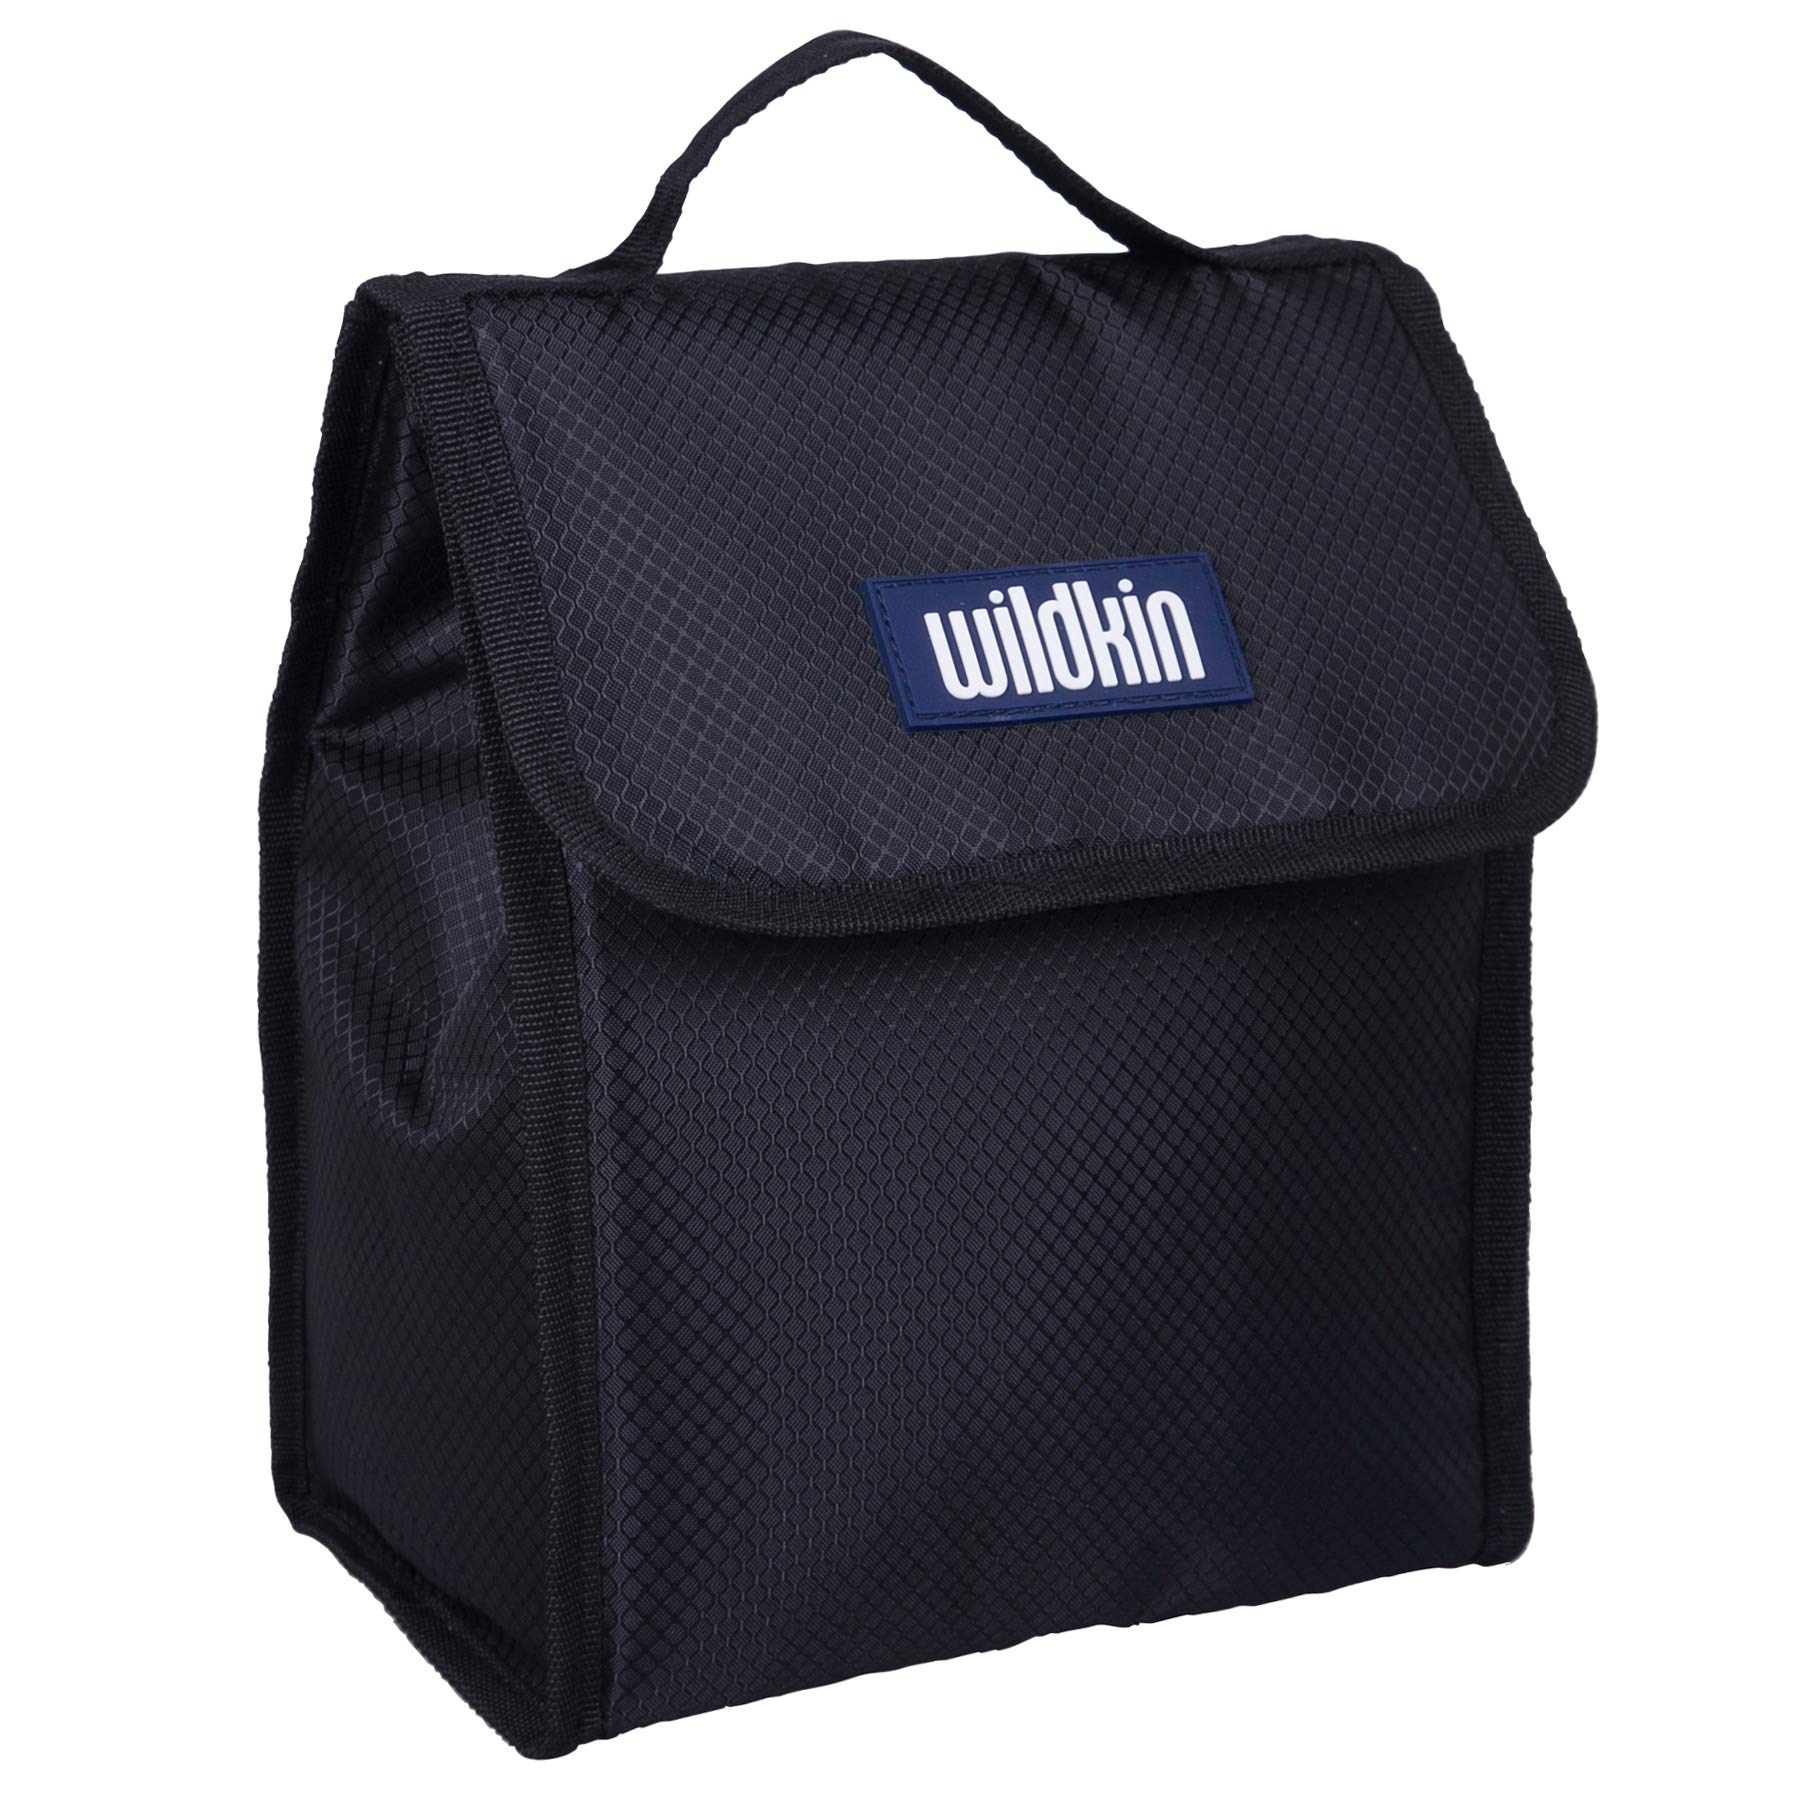 Wildkin Large Insulated Lunch Bag for Men and Women, Perfect Size for Packing Hot or Cold Snacks for Work and Travel, Measures 10 x 8.5 x 5 Inches, Mom's Choice Award Winner, BPA-free (Rip-Stop Black)